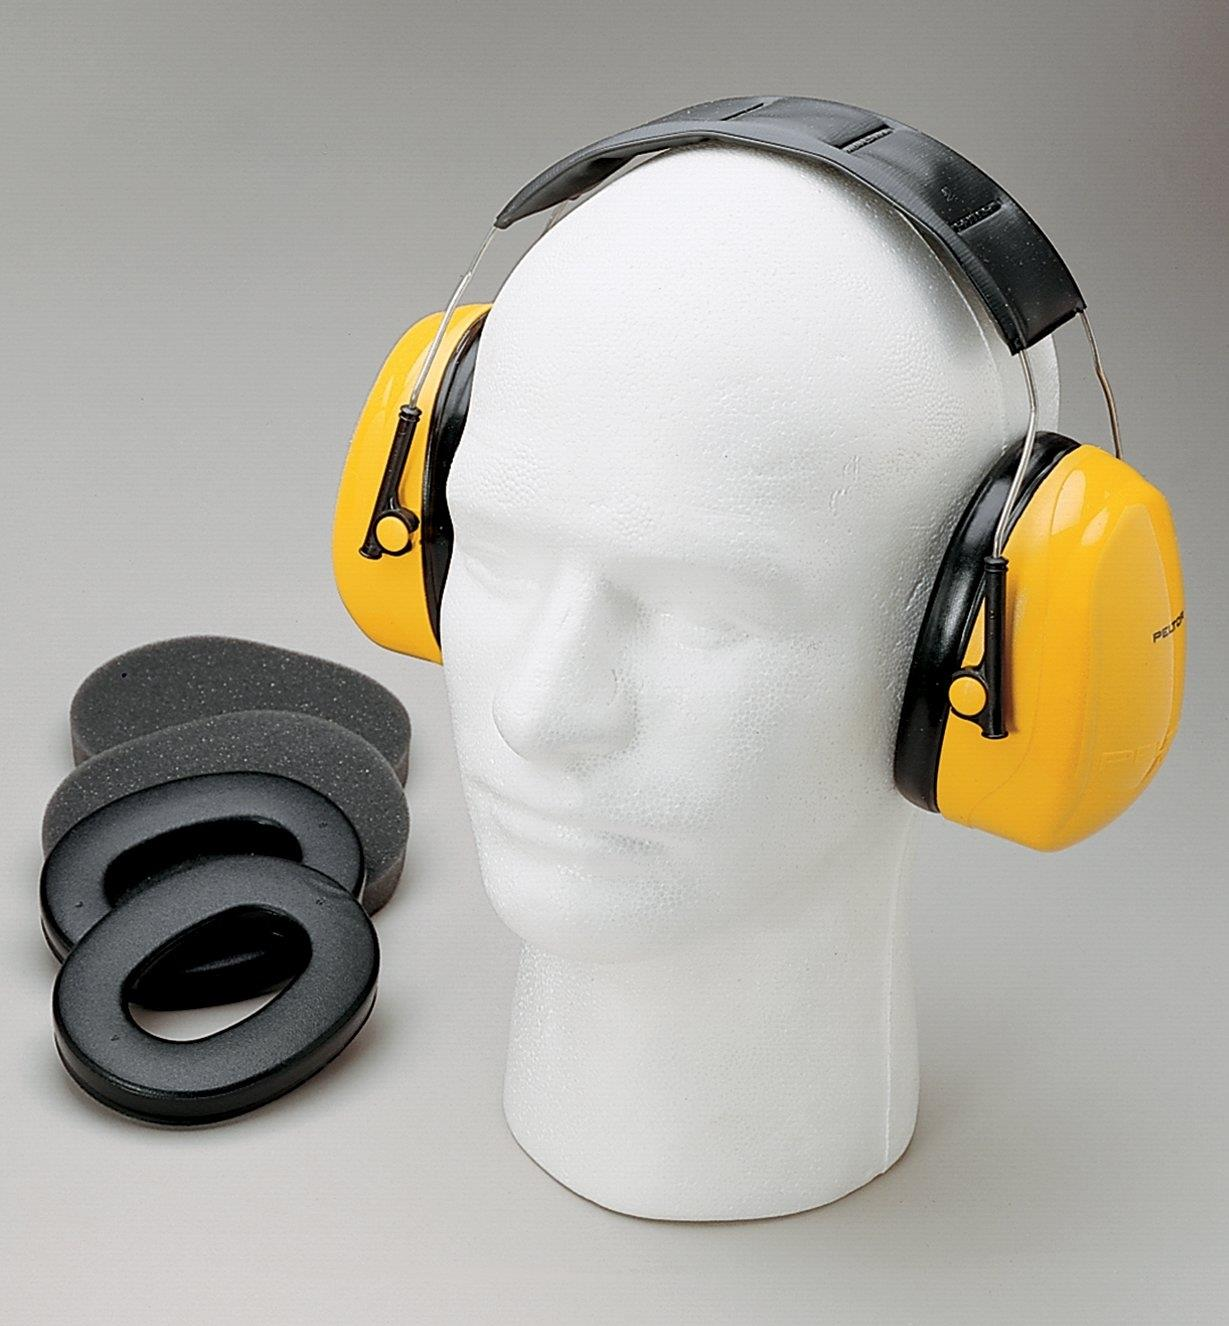 22R1001 - Casque antibruit